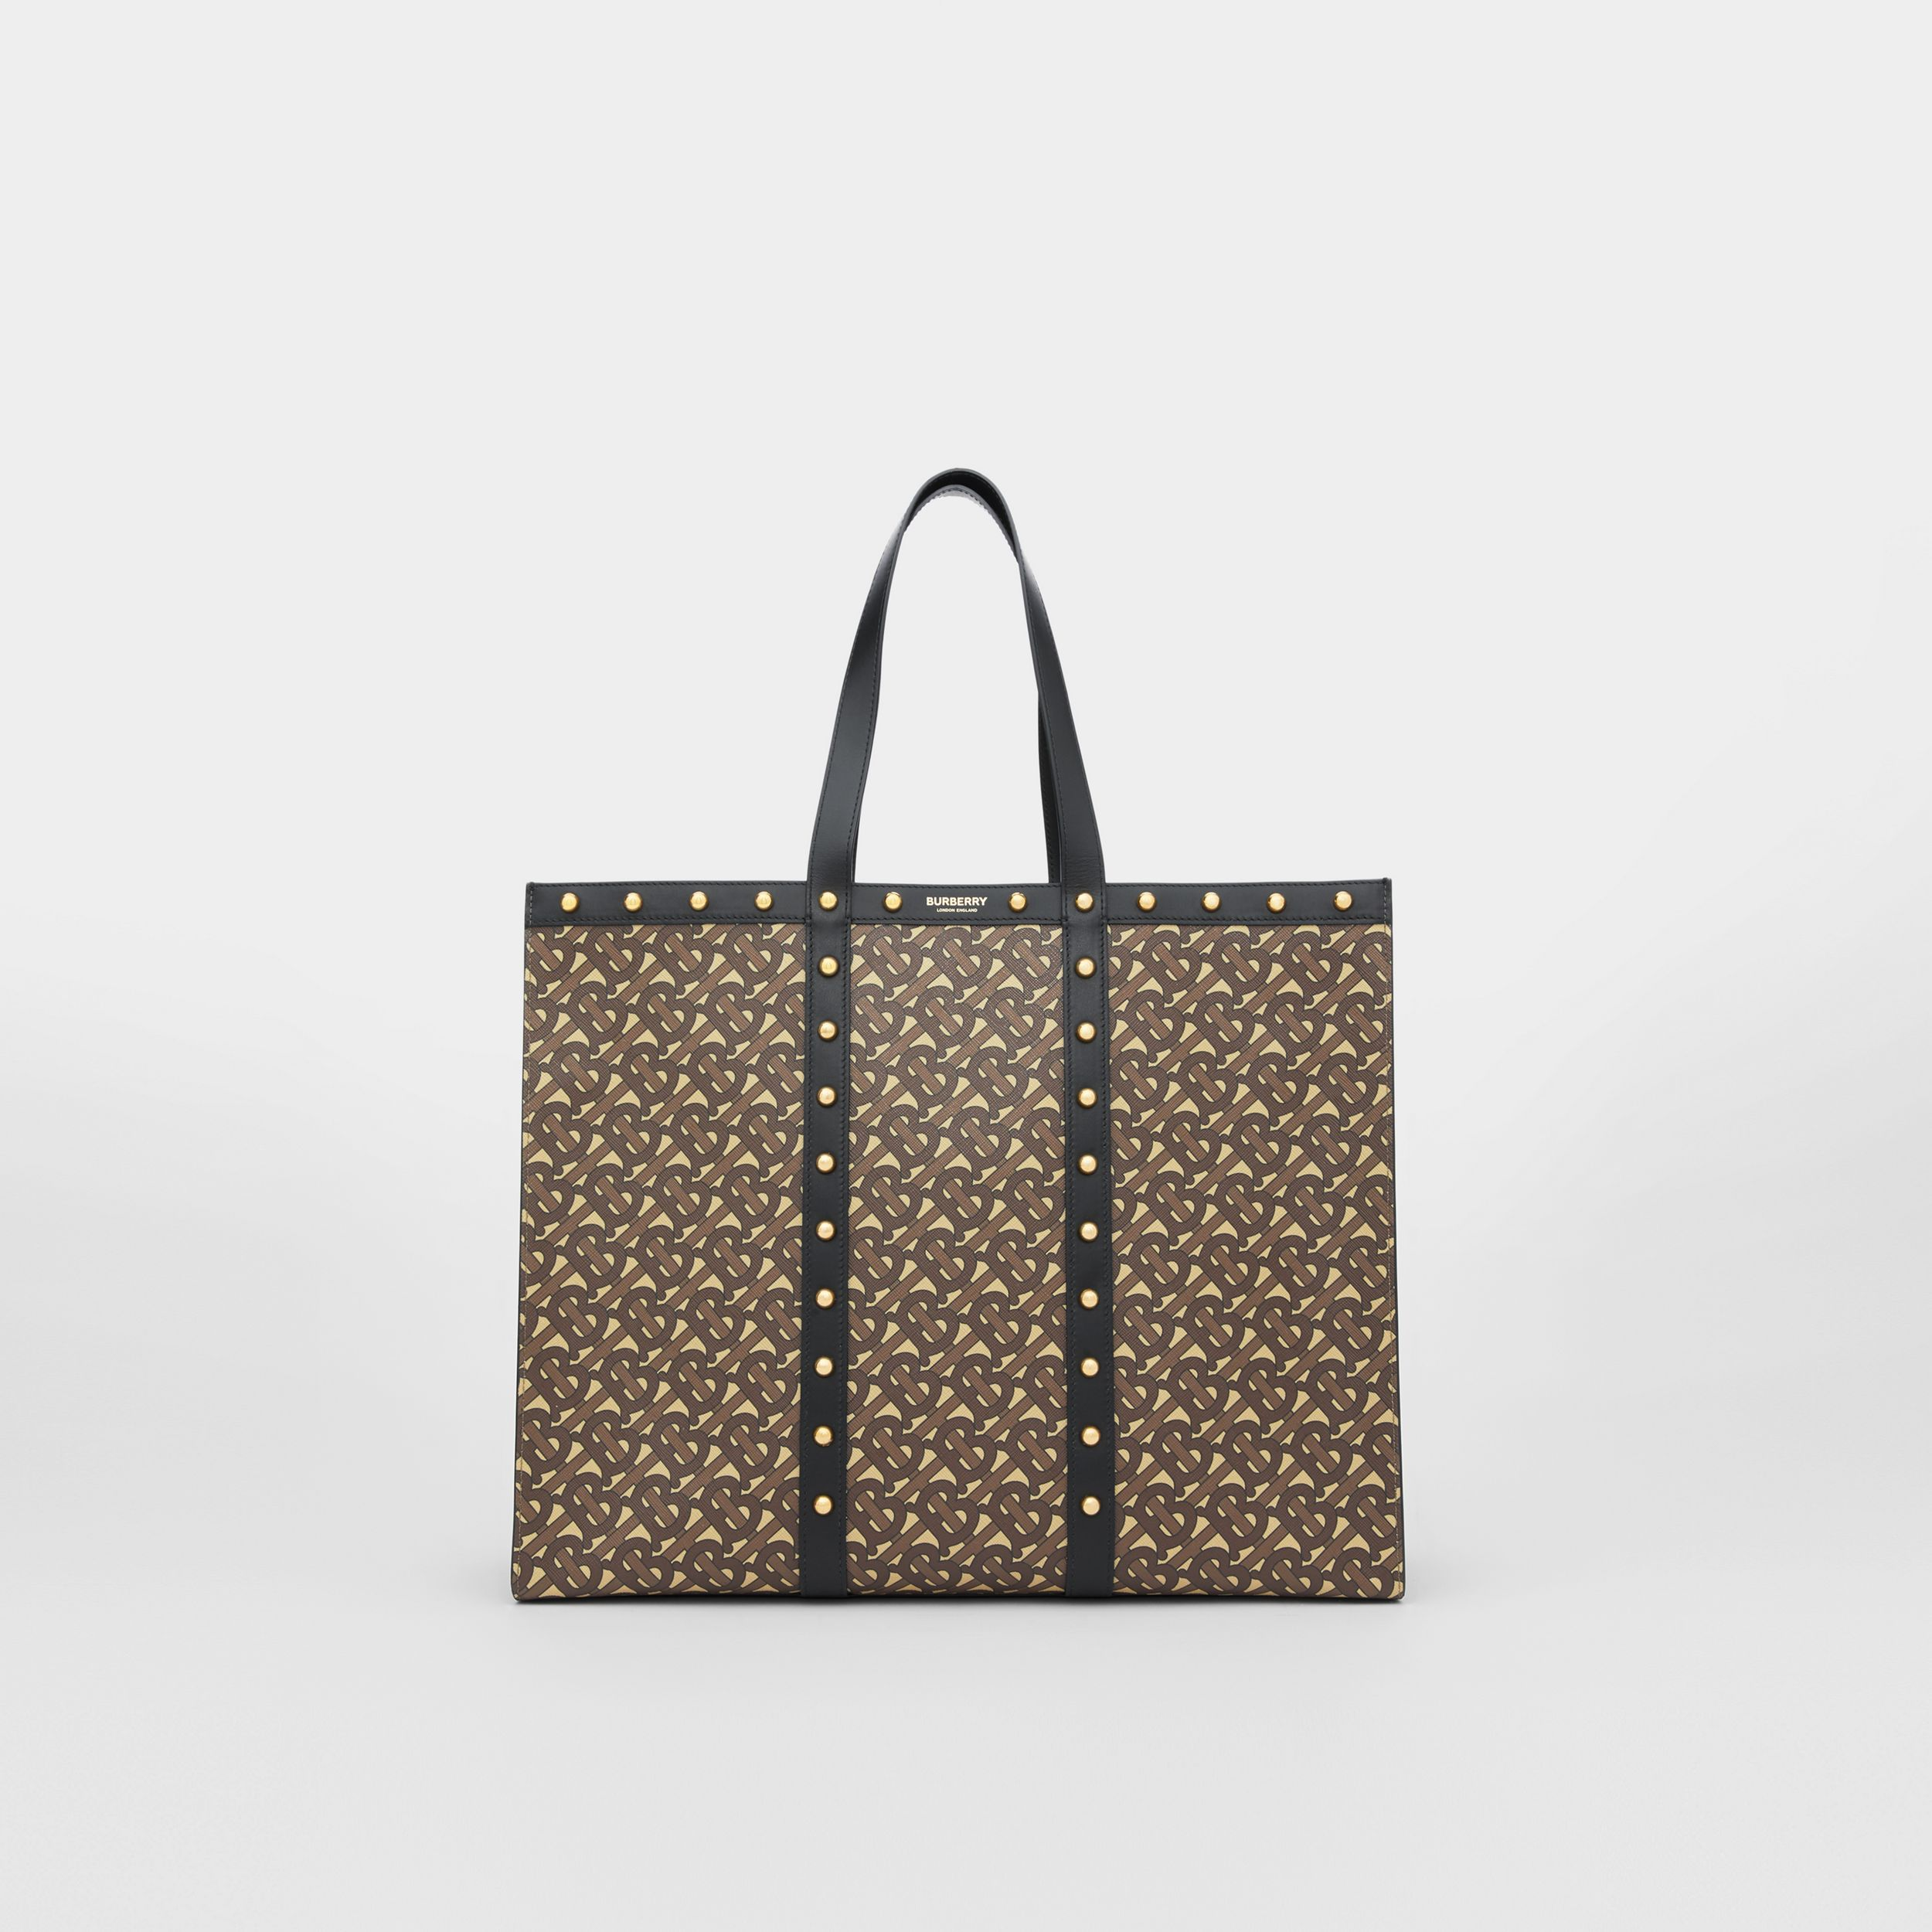 Monogram Print E-canvas Tote Bag in Black | Burberry Australia - 1